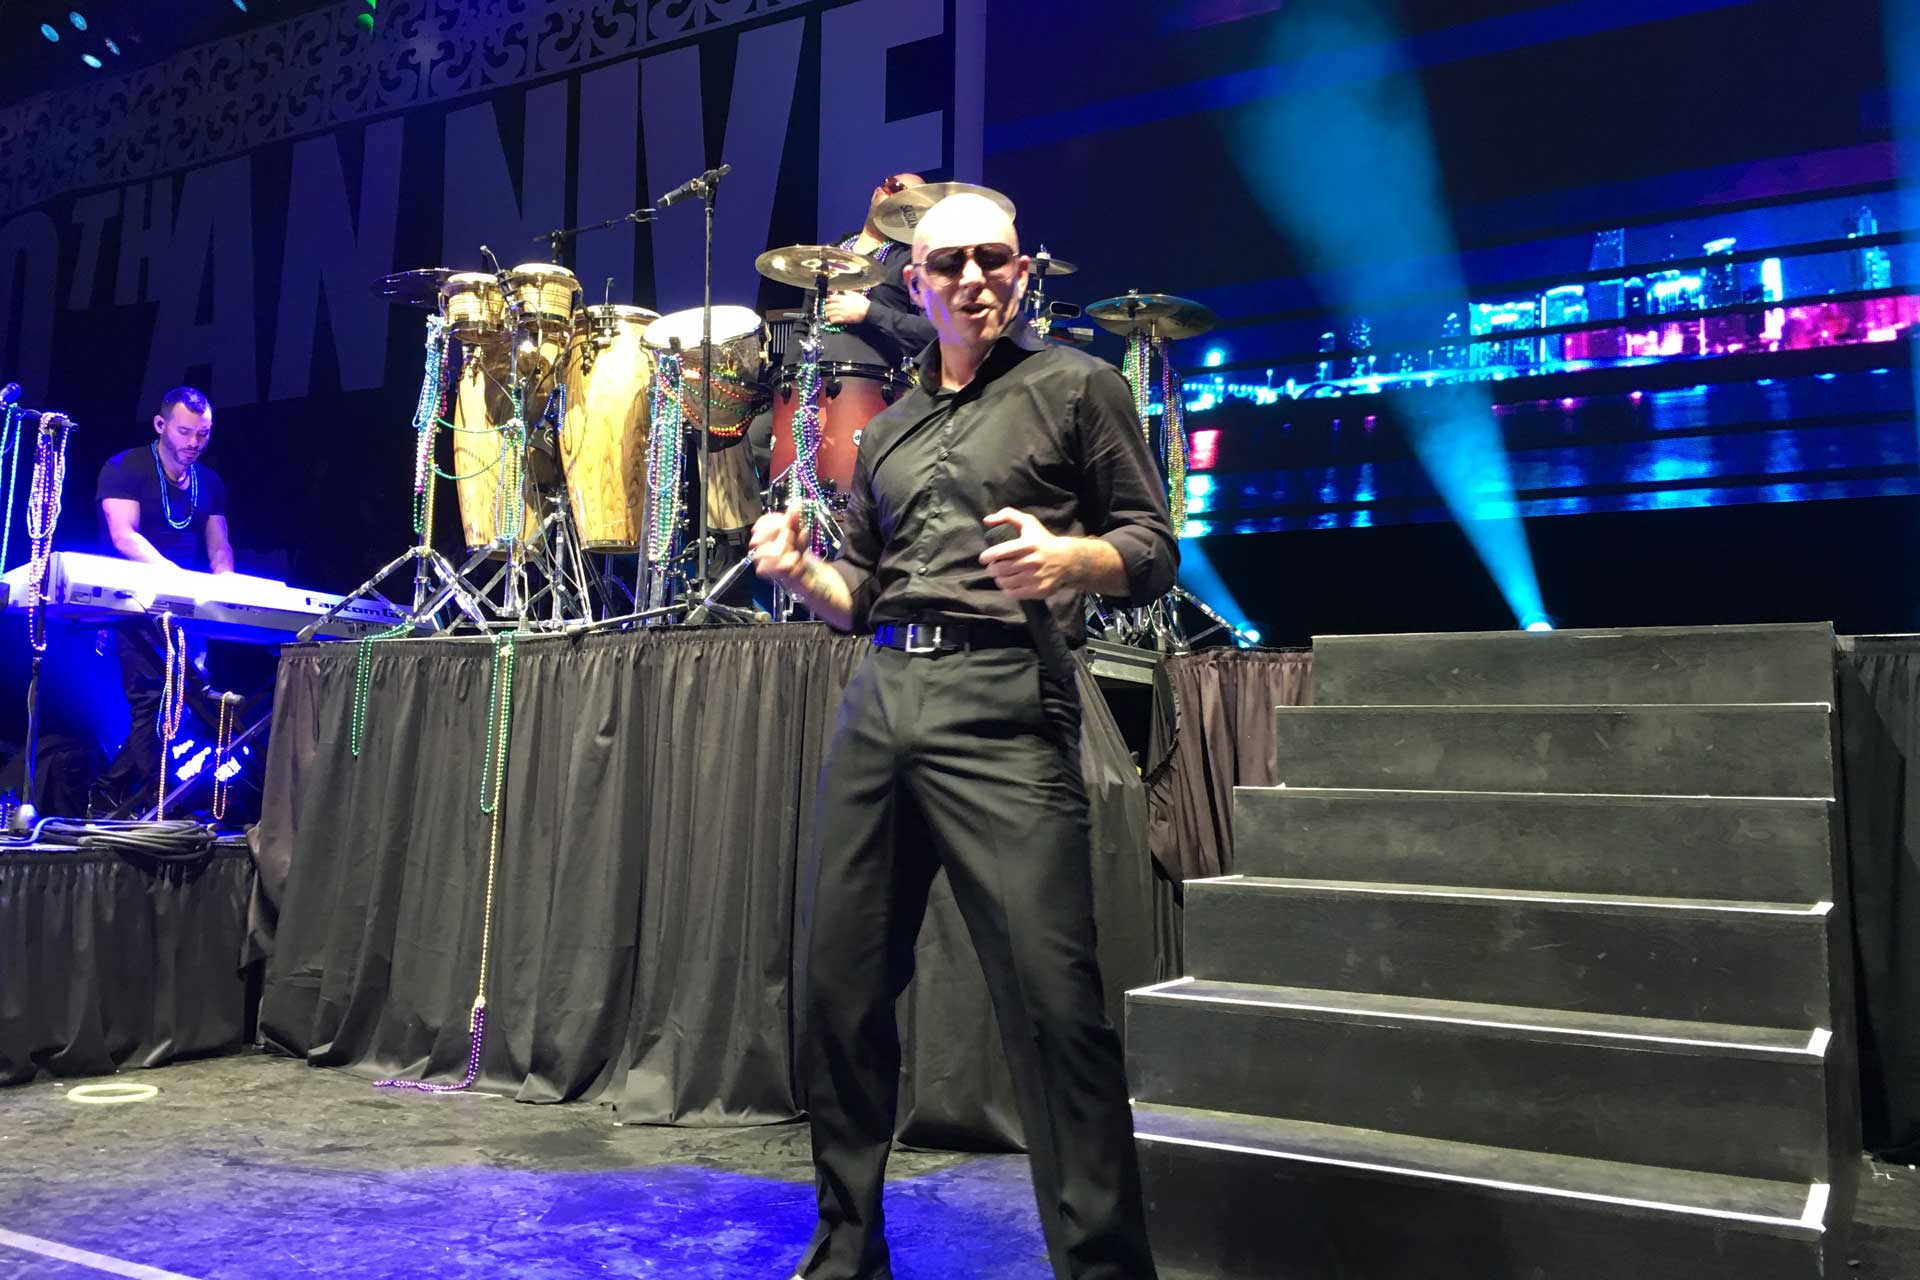 Pitbull performing at Endymion Extravaganza